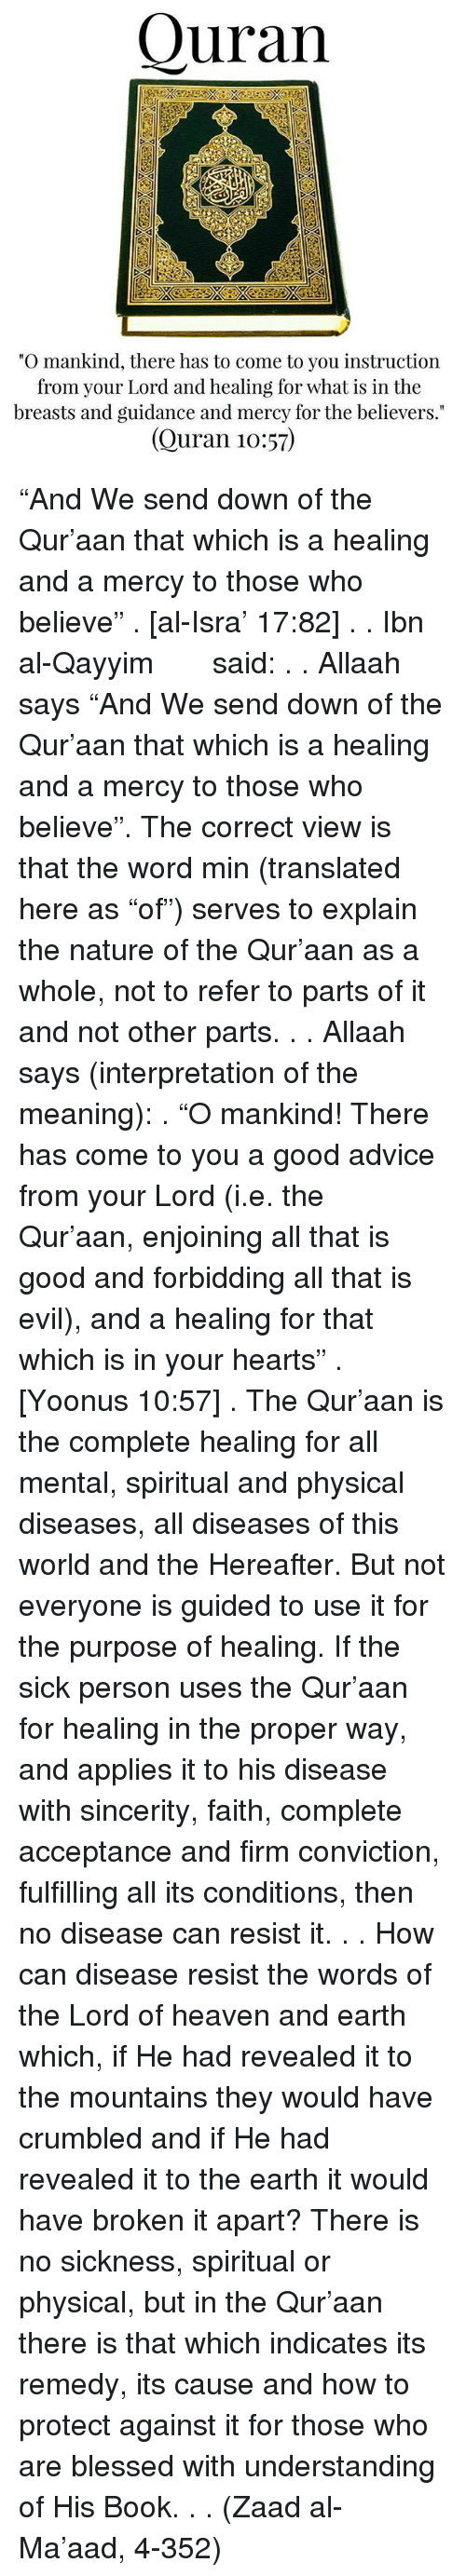 """Referance: Quran  """"O mankind, there has to come to you instruction  from your Lord and healing for what is in the  breasts and guidance and mercy for the believers.""""  (Quran 10:57) """"And We send down of the Qur'aan that which is a healing and a mercy to those who believe"""" . [al-Isra' 17:82] . . Ibn al-Qayyim رحمه الله said: . . Allaah says """"And We send down of the Qur'aan that which is a healing and a mercy to those who believe"""". The correct view is that the word min (translated here as """"of"""") serves to explain the nature of the Qur'aan as a whole, not to refer to parts of it and not other parts. . . Allaah says (interpretation of the meaning): . """"O mankind! There has come to you a good advice from your Lord (i.e. the Qur'aan, enjoining all that is good and forbidding all that is evil), and a healing for that which is in your hearts"""" . [Yoonus 10:57] . The Qur'aan is the complete healing for all mental, spiritual and physical diseases, all diseases of this world and the Hereafter. But not everyone is guided to use it for the purpose of healing. If the sick person uses the Qur'aan for healing in the proper way, and applies it to his disease with sincerity, faith, complete acceptance and firm conviction, fulfilling all its conditions, then no disease can resist it. . . How can disease resist the words of the Lord of heaven and earth which, if He had revealed it to the mountains they would have crumbled and if He had revealed it to the earth it would have broken it apart? There is no sickness, spiritual or physical, but in the Qur'aan there is that which indicates its remedy, its cause and how to protect against it for those who are blessed with understanding of His Book. . . (Zaad al-Ma'aad, 4-352)"""